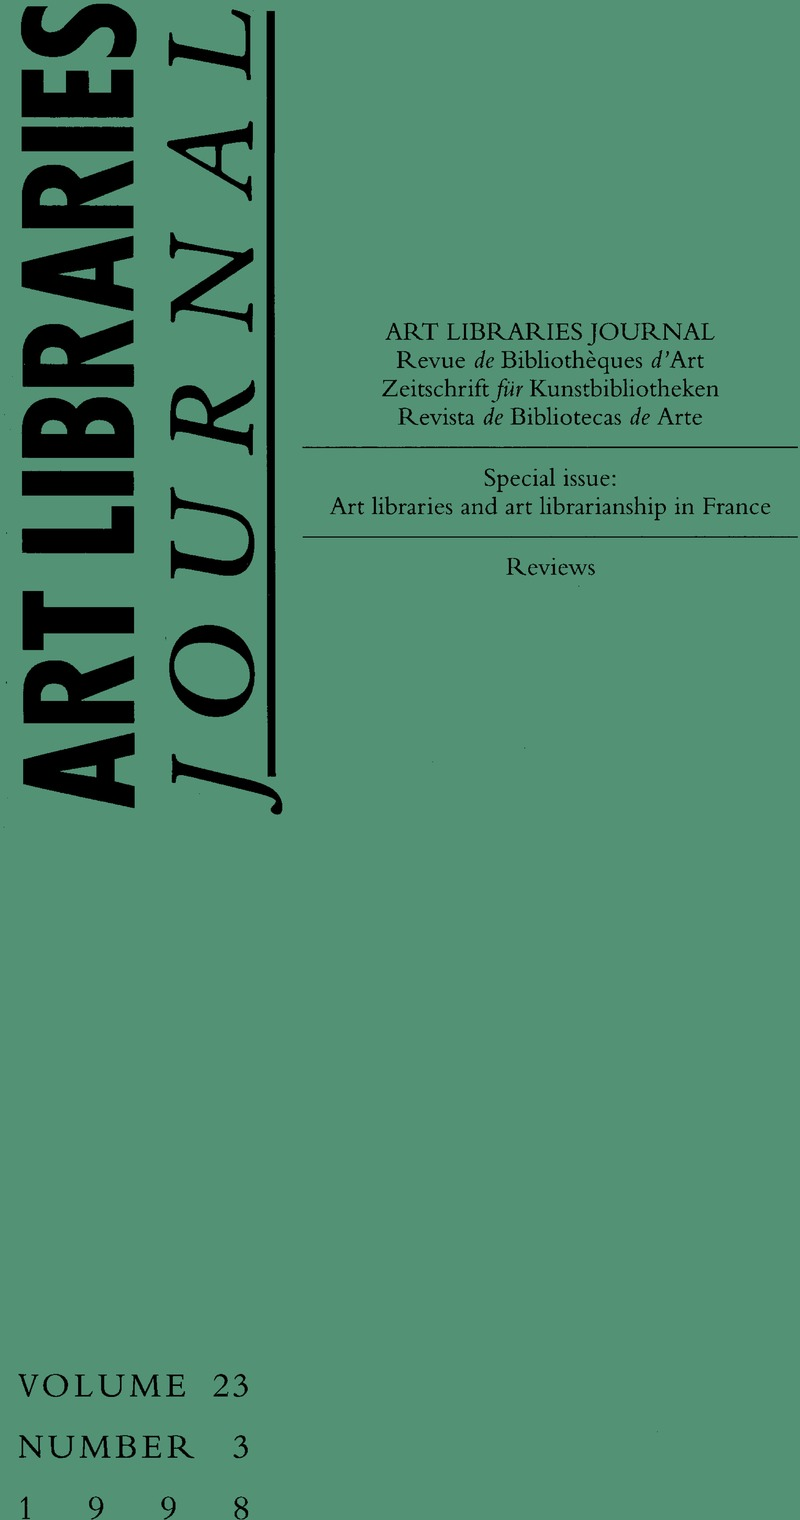 Arte France Journal Alj Volume 23 Issue 3 Cover And Front Matter Art Libraries